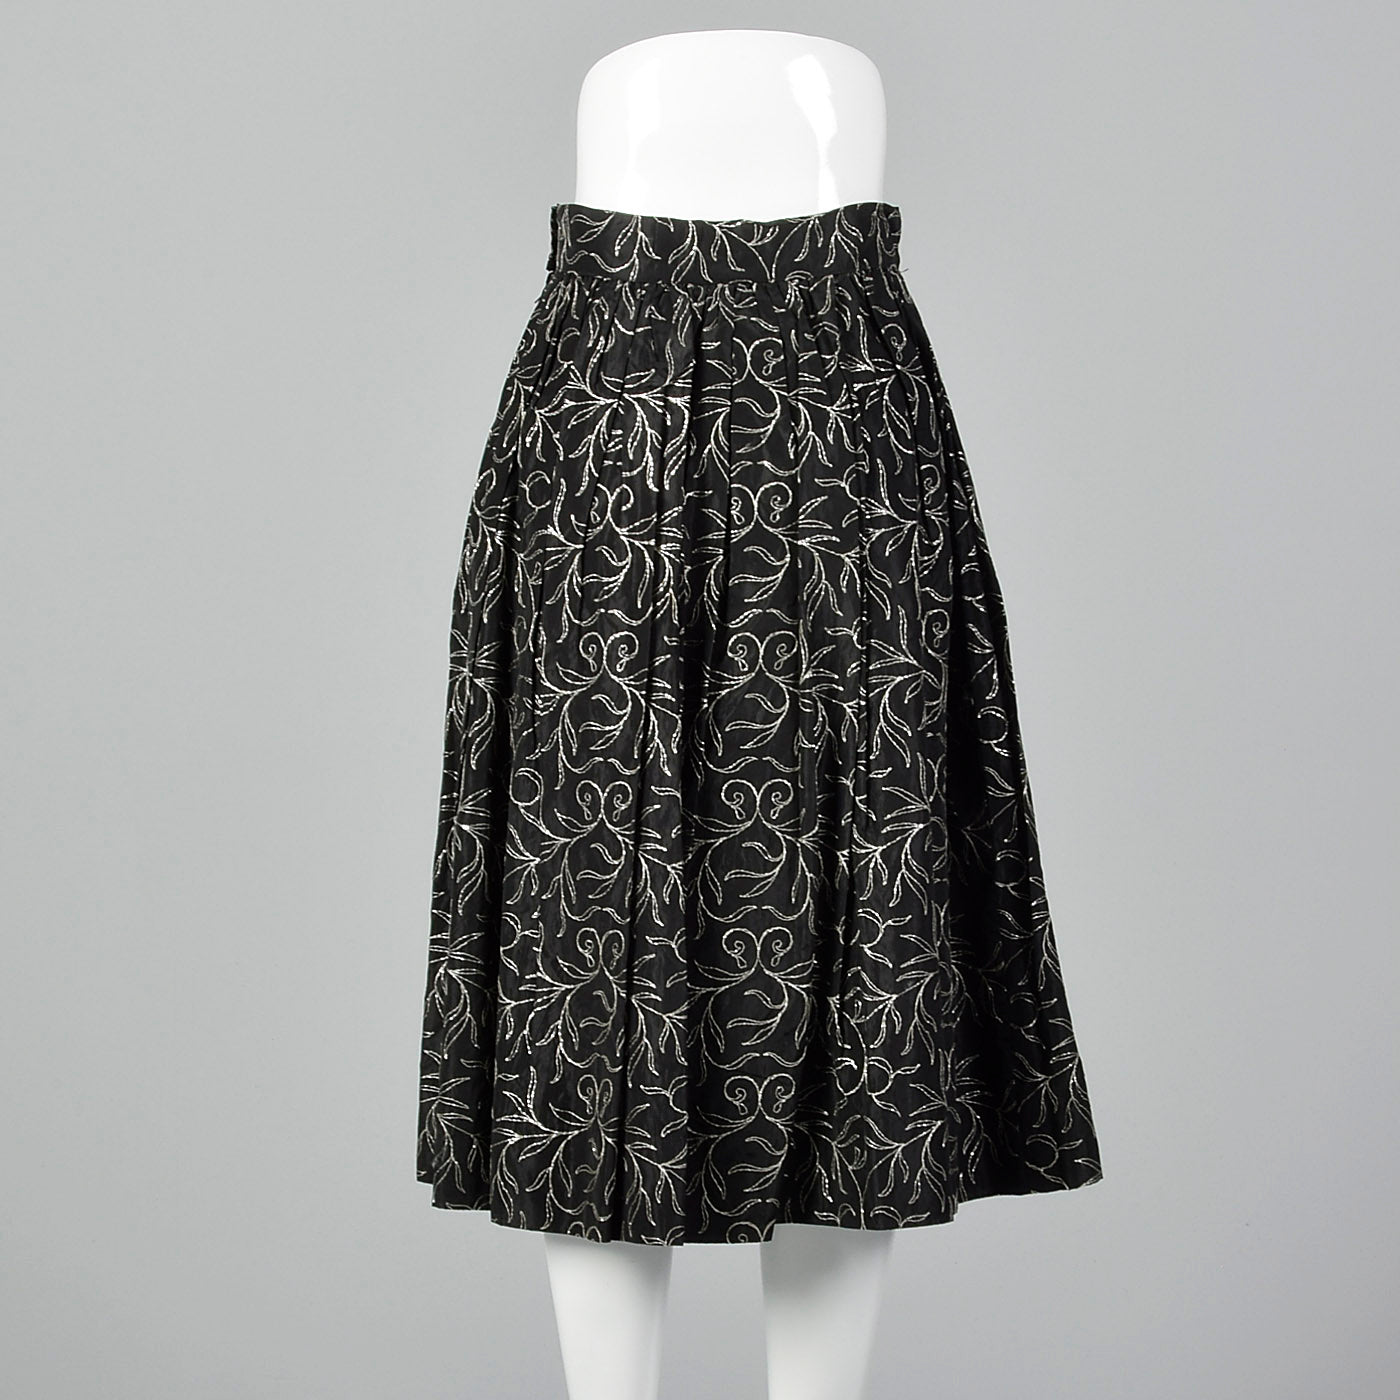 1950s Black Taffeta Skirt with Metallic Silver Embroidery